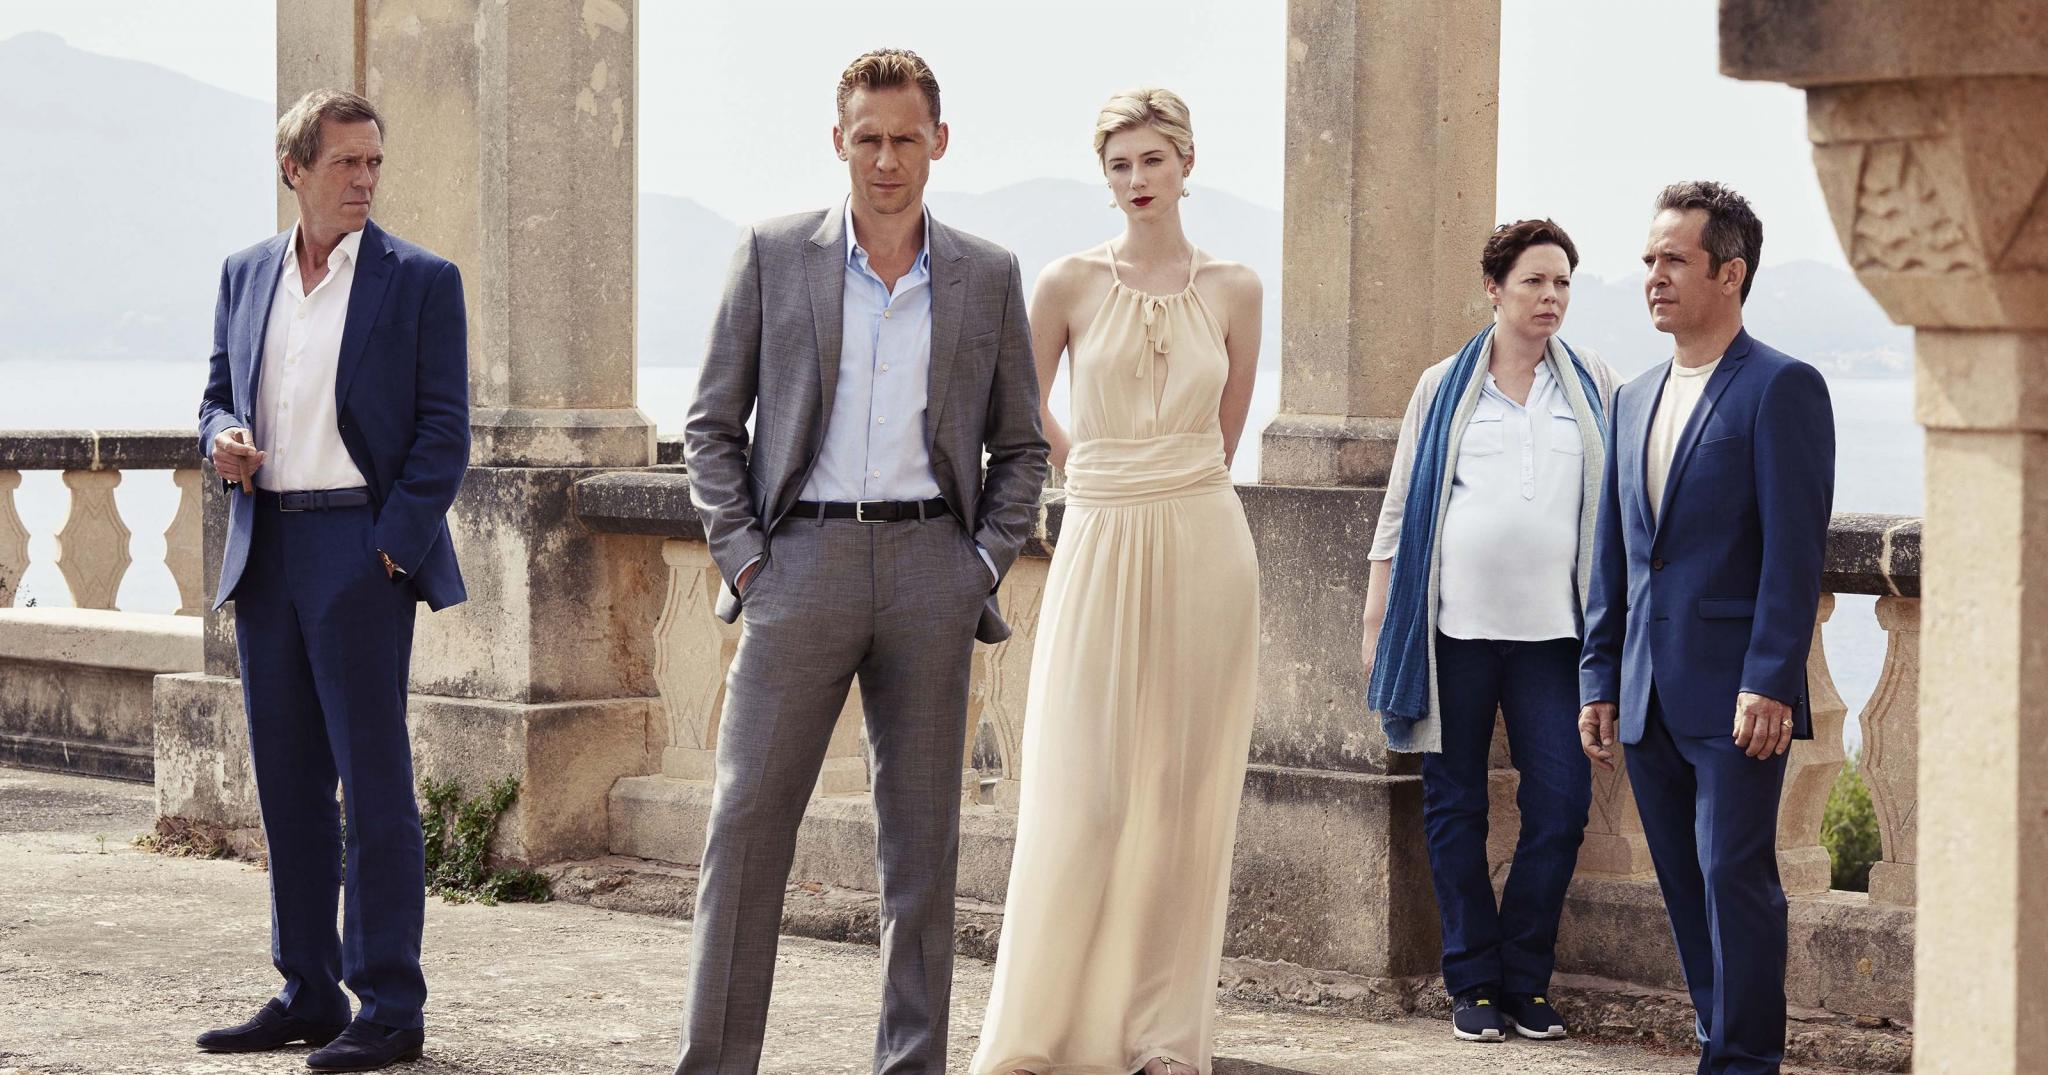 MADRID. TELEVISION. Reparto de la miniserie 'The night manager'.